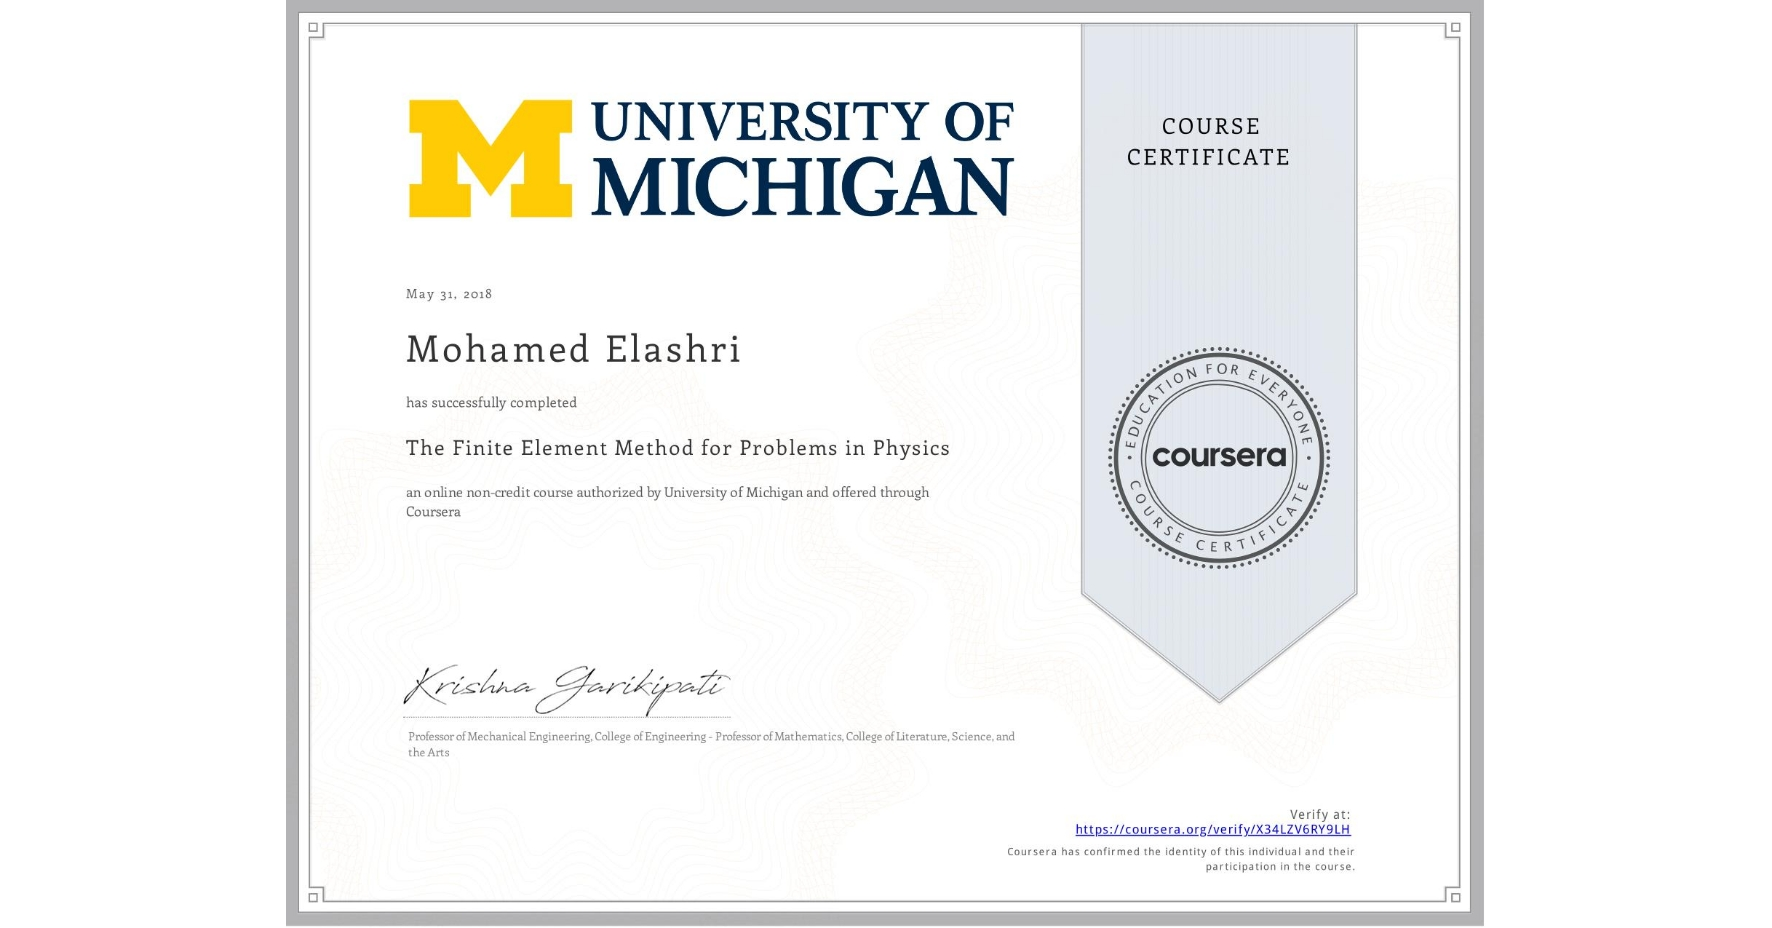 View certificate for Mohamed Elashri, The Finite Element Method for Problems in Physics, an online non-credit course authorized by University of Michigan and offered through Coursera